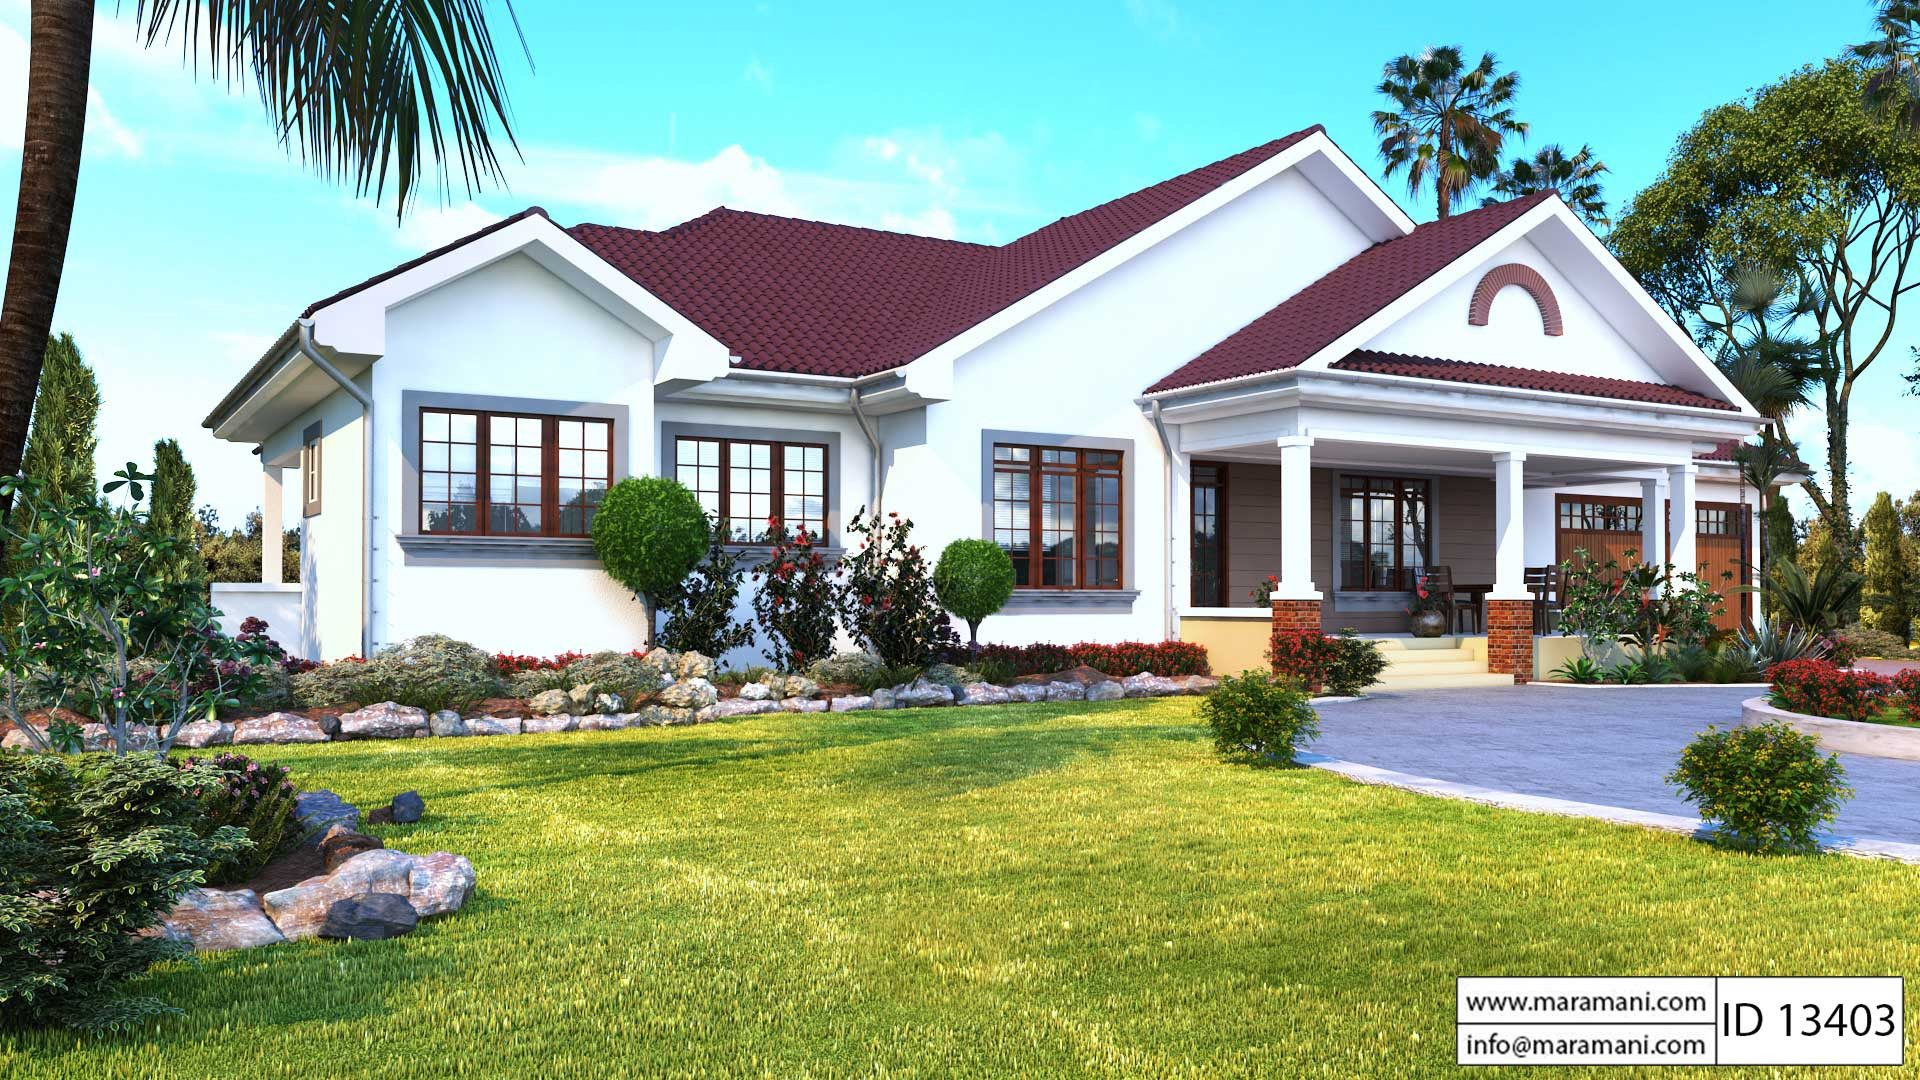 3 bedroom bungalow with garage id 13403 house plans by House designers house plans